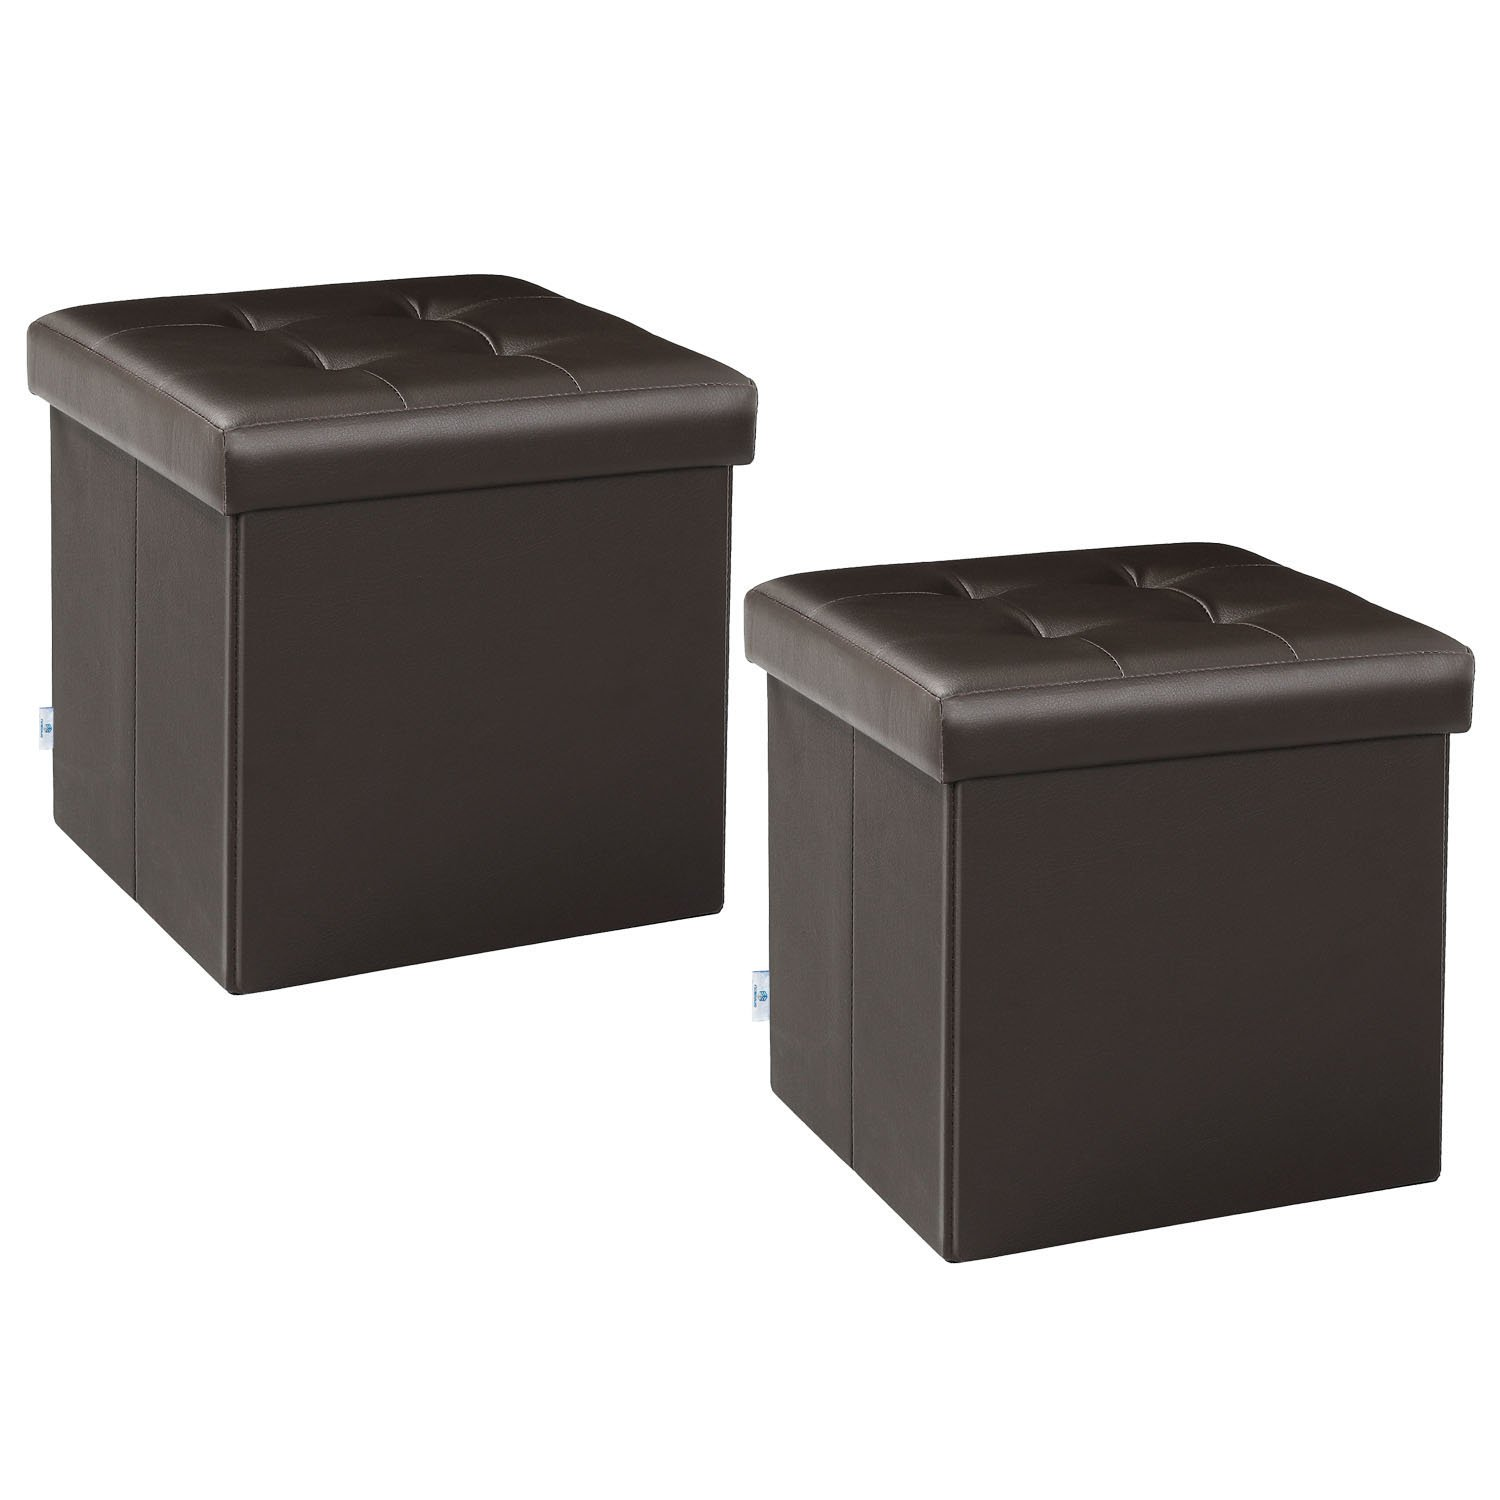 B FSOBEIIALEO Storage Ottoman Small Cube Footrest Stool Seat Faux Leather Toy Chest Brown 12.6''X12.6''X12.6'' (2 Pack) by B FSOBEIIALEO